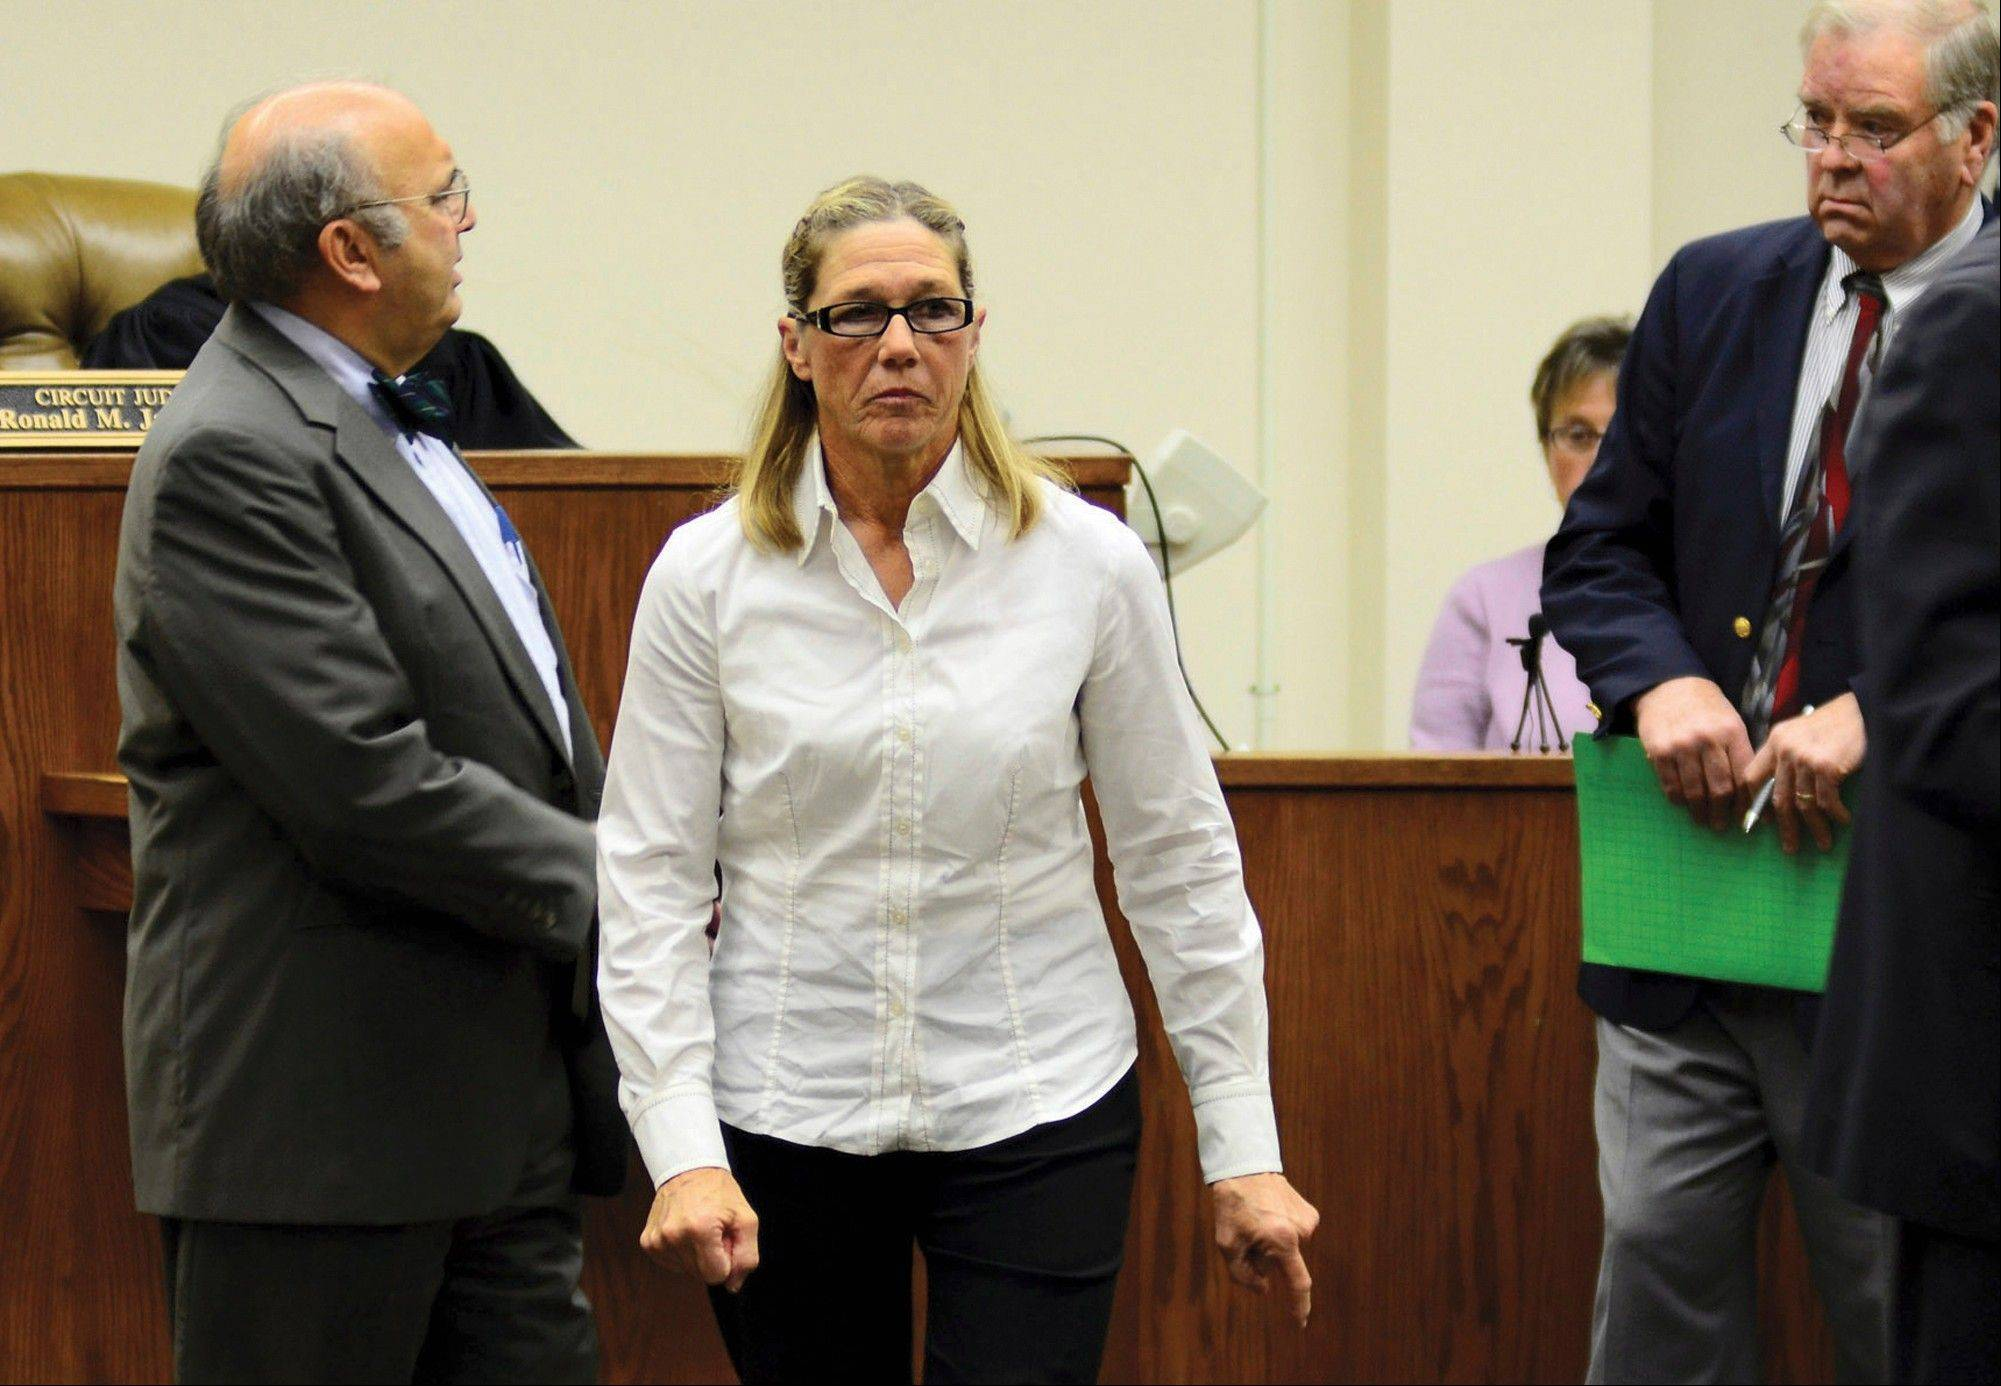 Former Dixon comptroller Rita Crundwell pleaded guilty last week to stealing $53 million from the city.